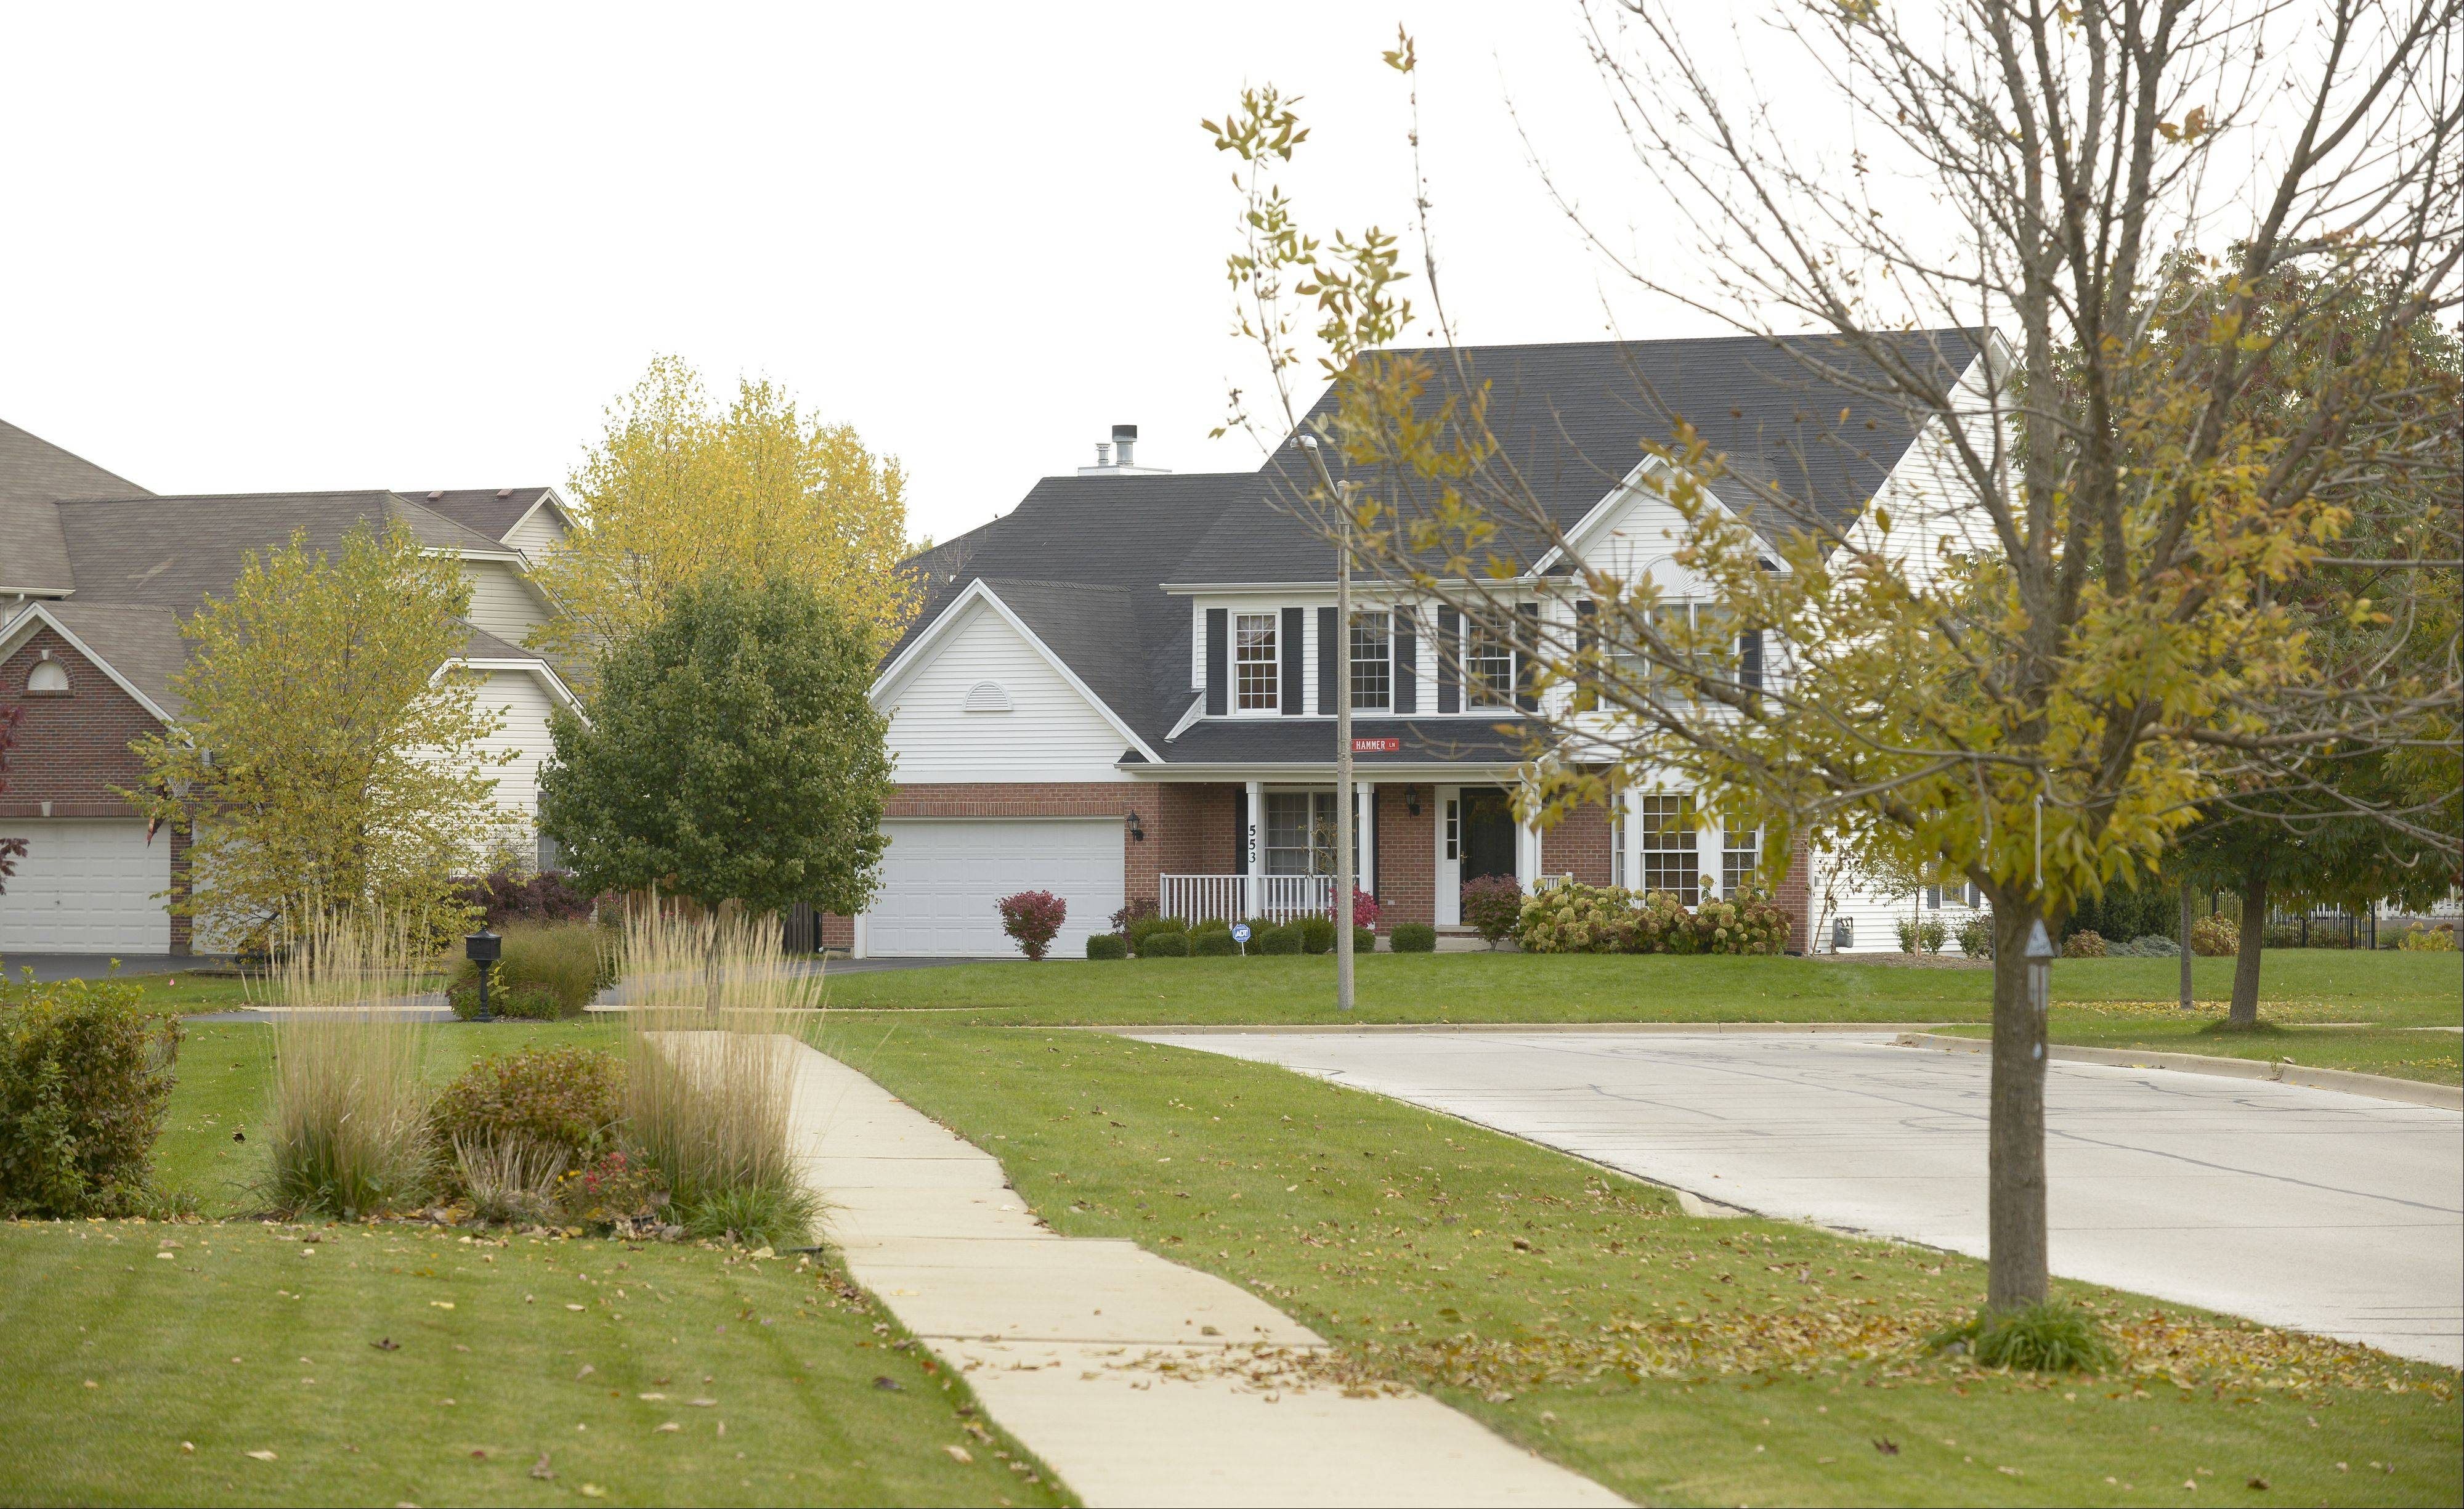 Homes along Oberweis Drive are typical of those found in Banbury Ridge.